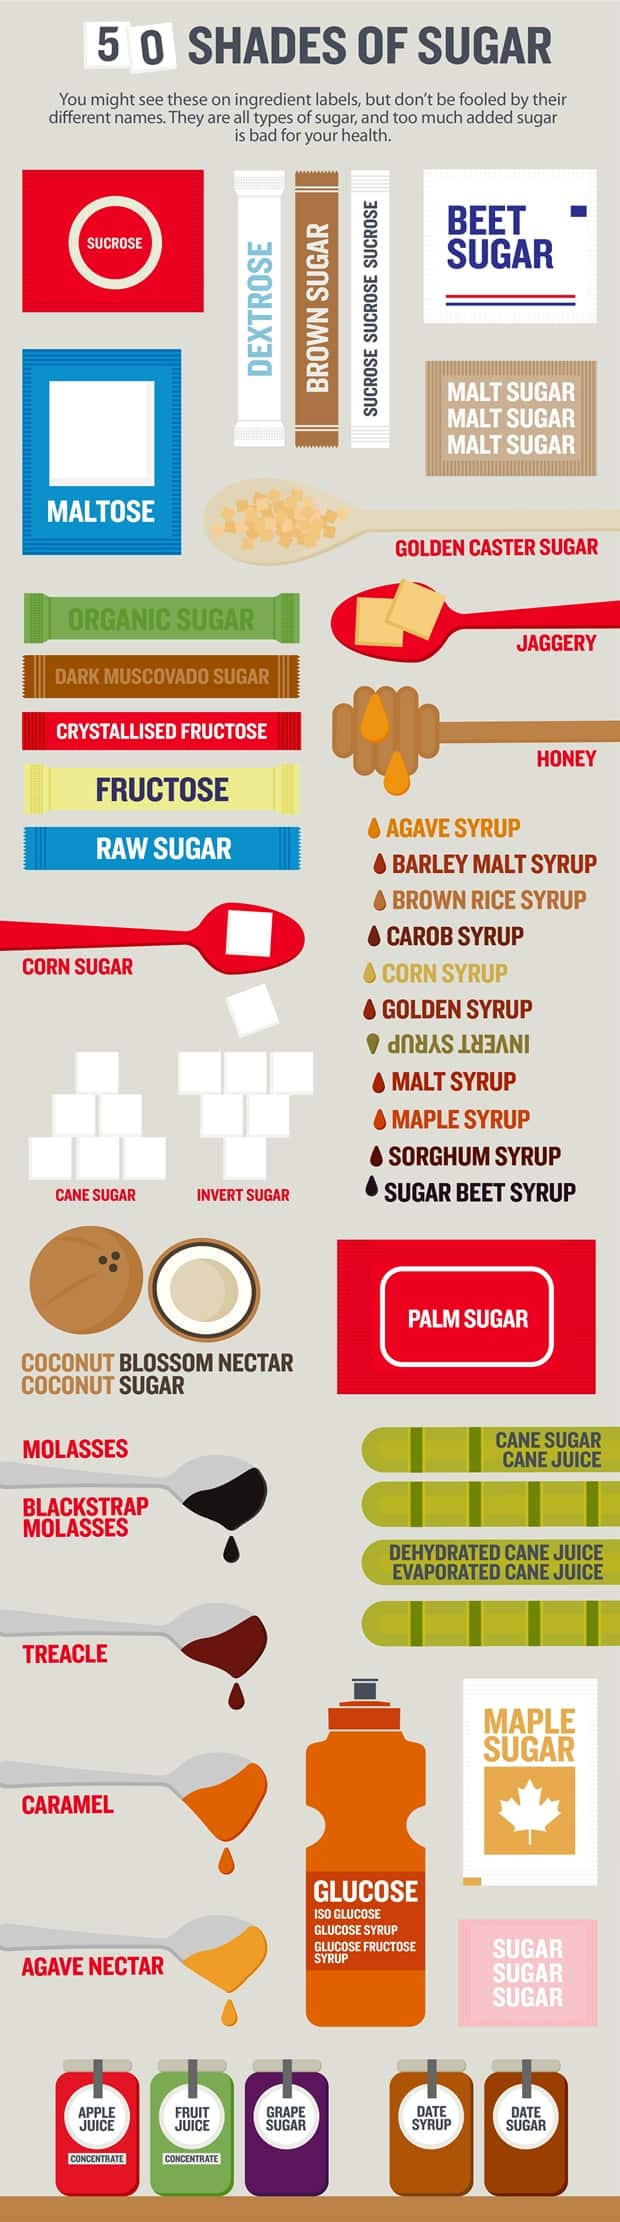 hidden sugar ingredient list healthy eating